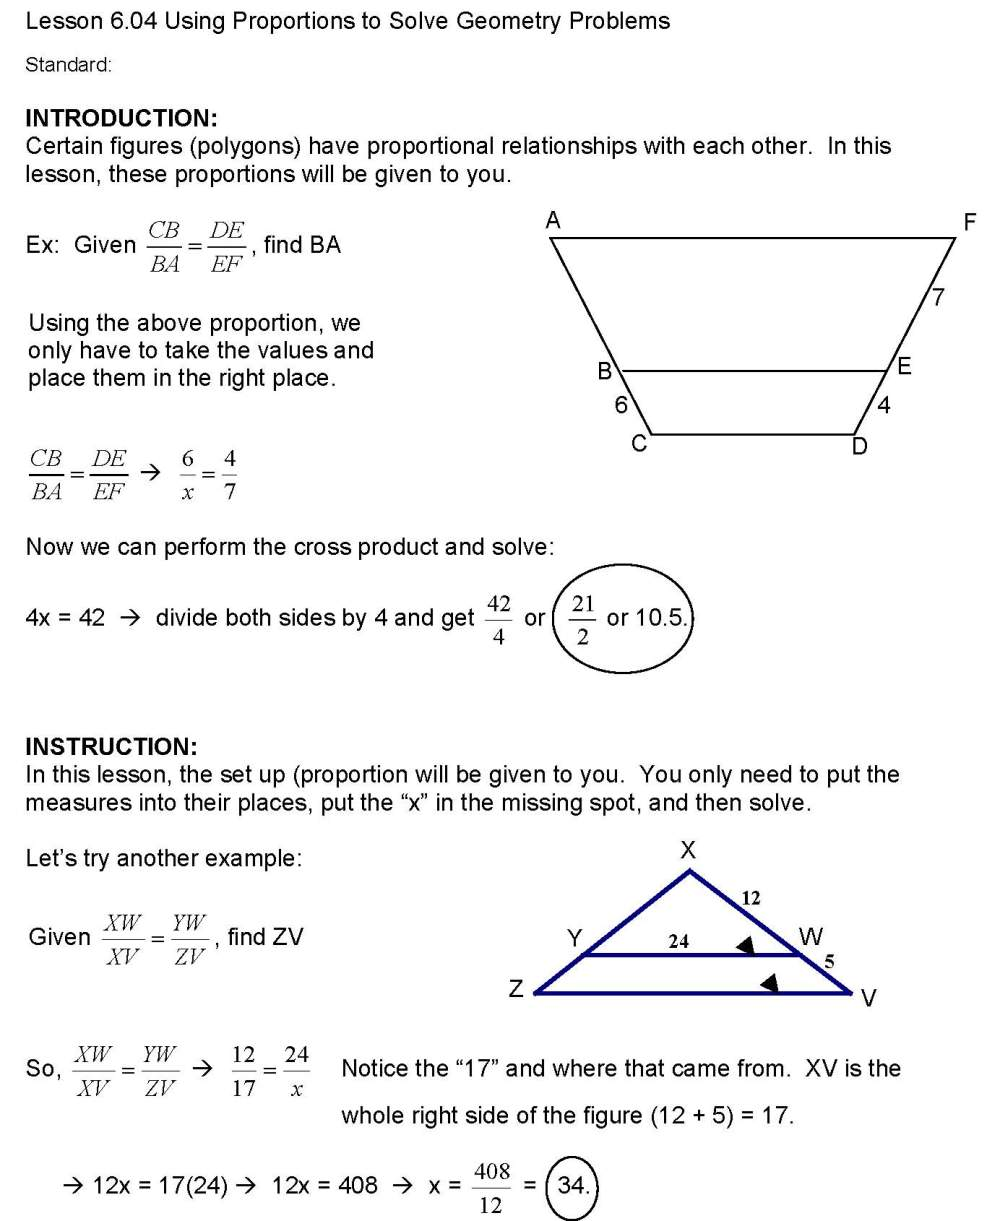 medium resolution of cosgeometry / Lesson 6-04 Using Proportions to Solve Geometry Problems